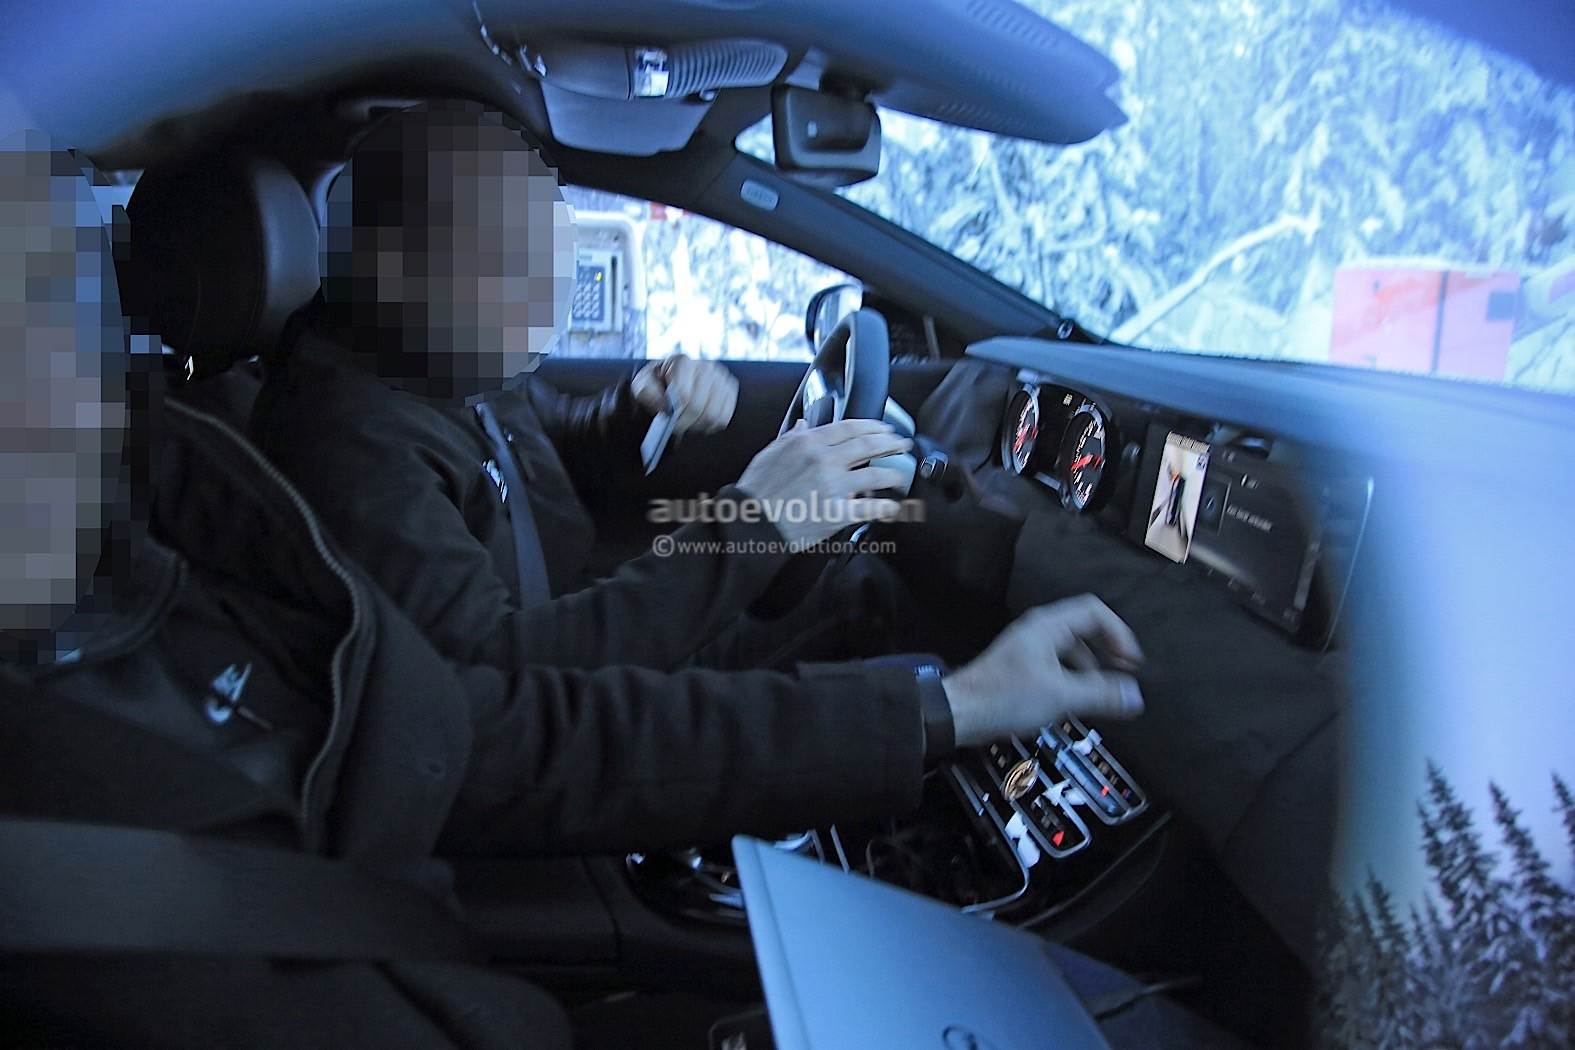 2019-mercedes-benz-cle-cls-partly-show-interior-for-the-first-time_1